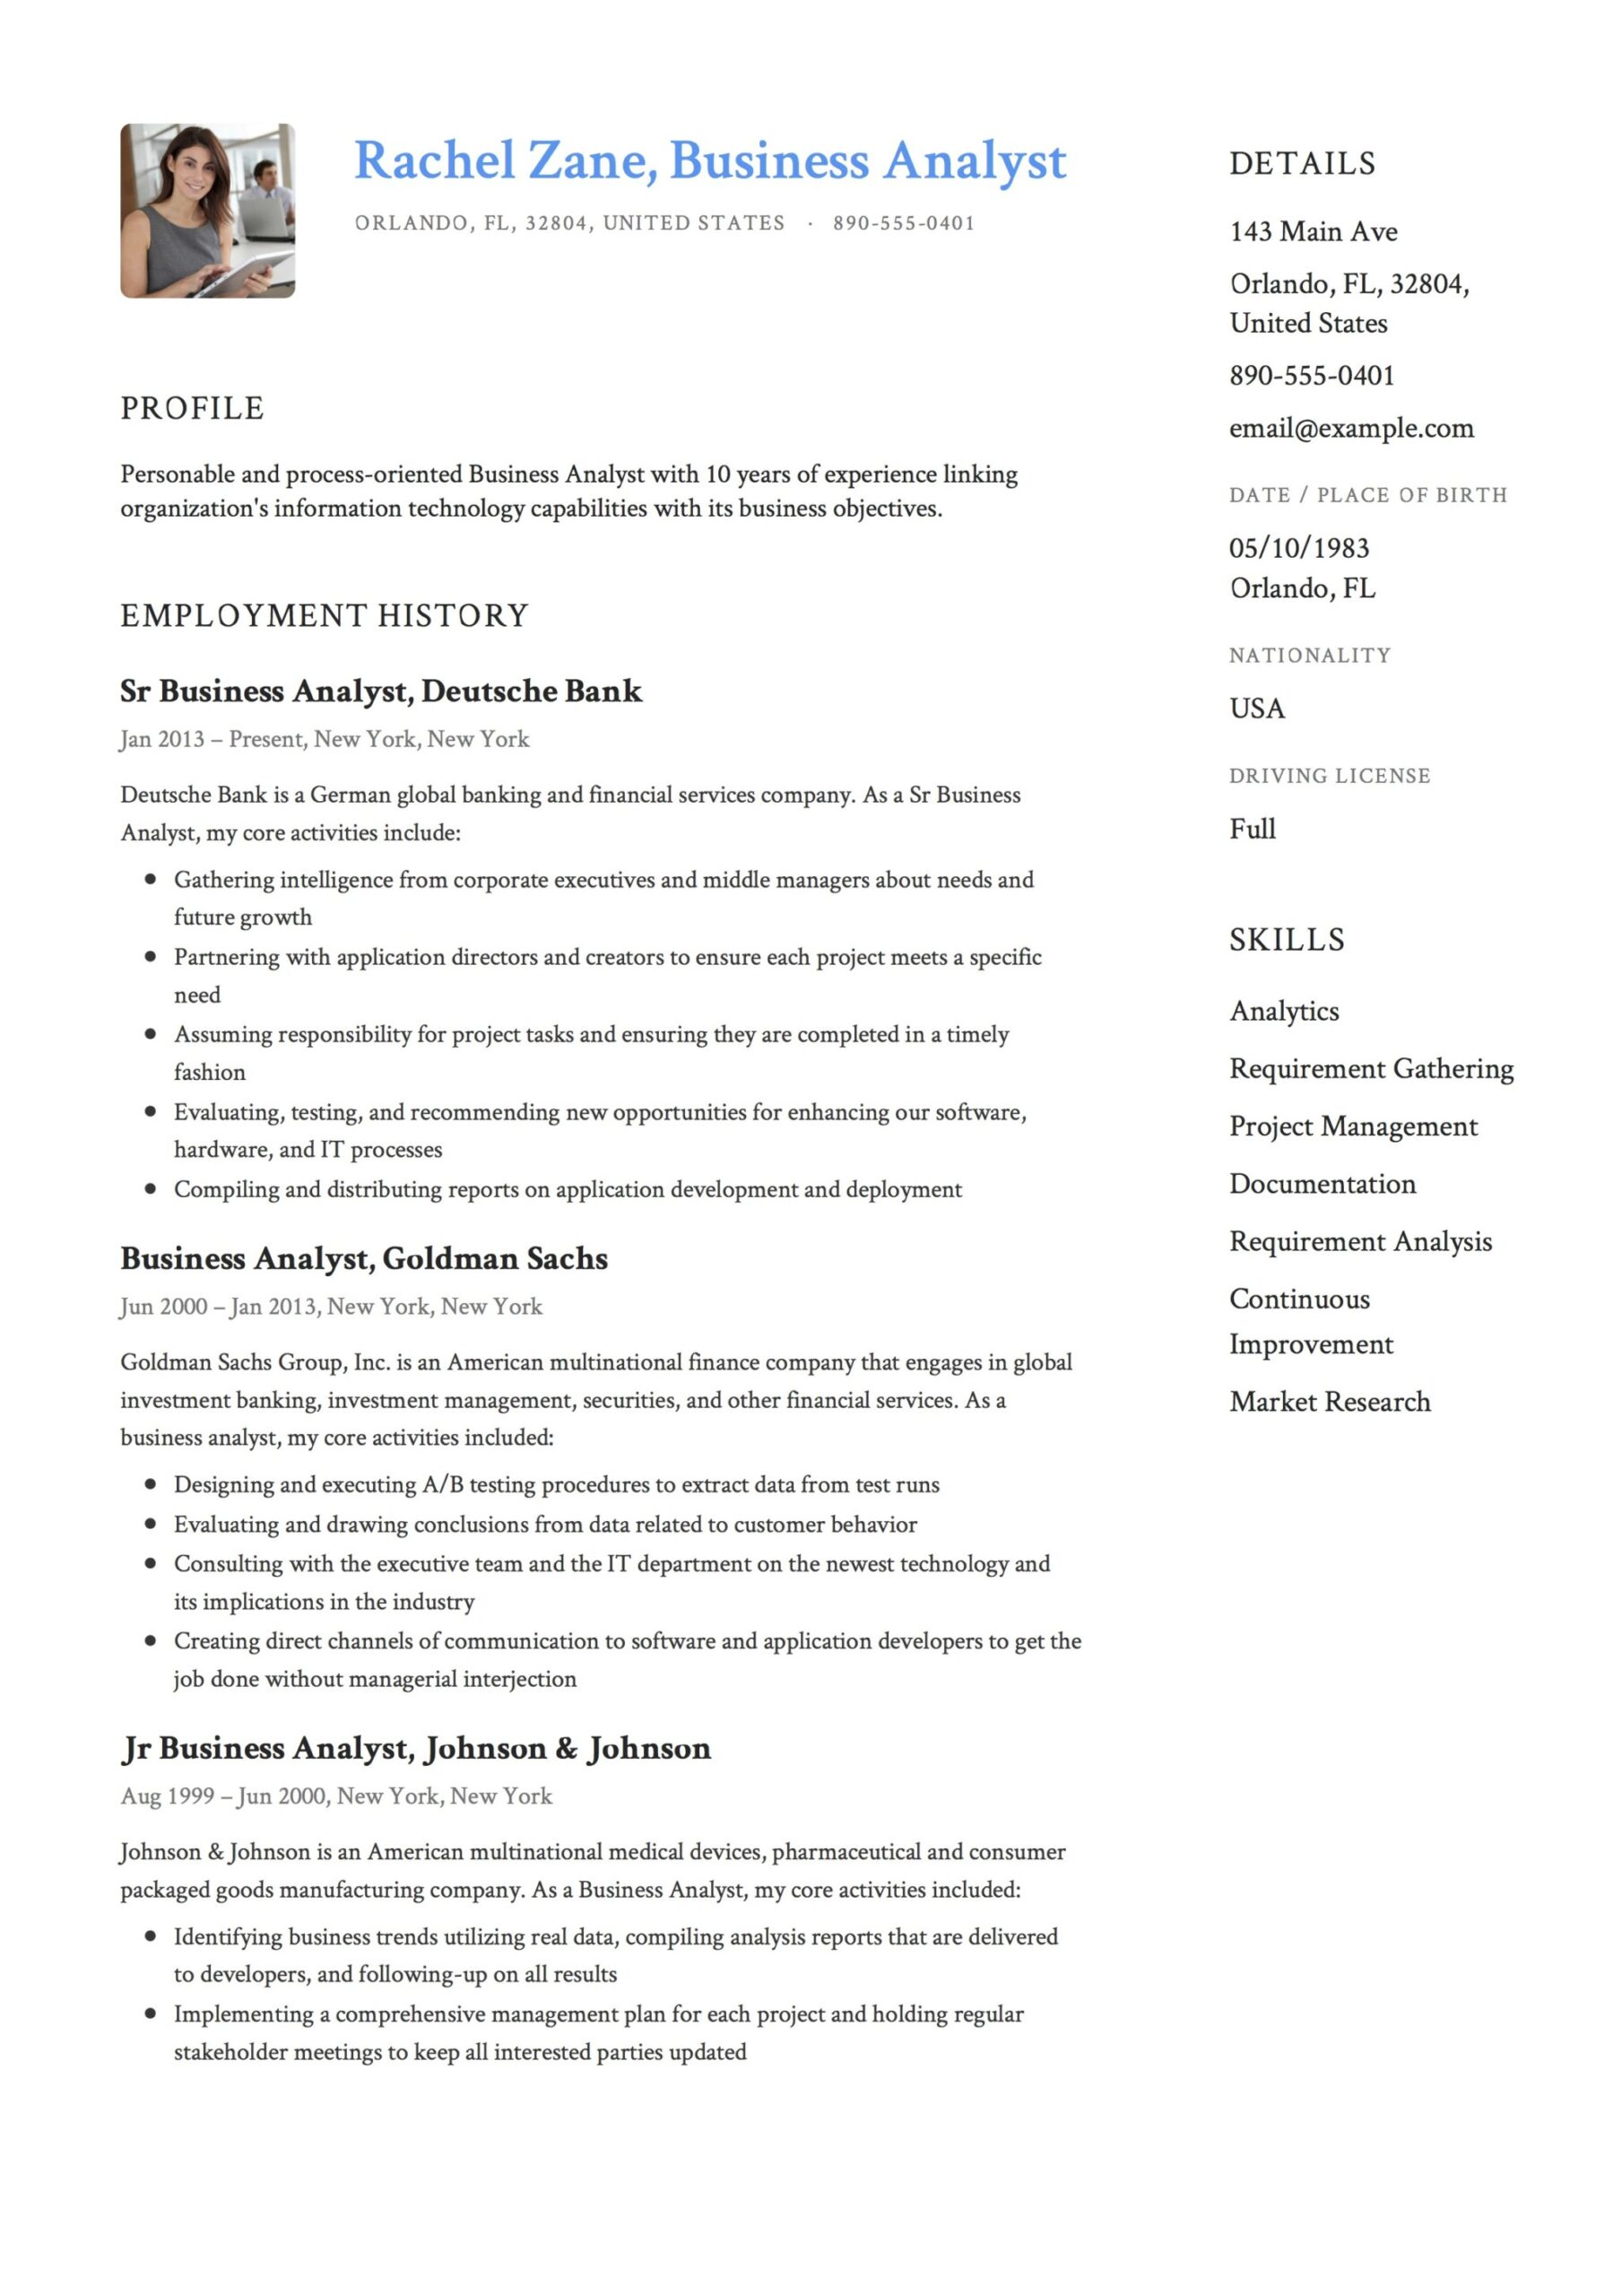 business analyst resume guide templates pdf free downloads sample for experienced years Resume Sample Resume For Experienced Business Analyst 2 Years